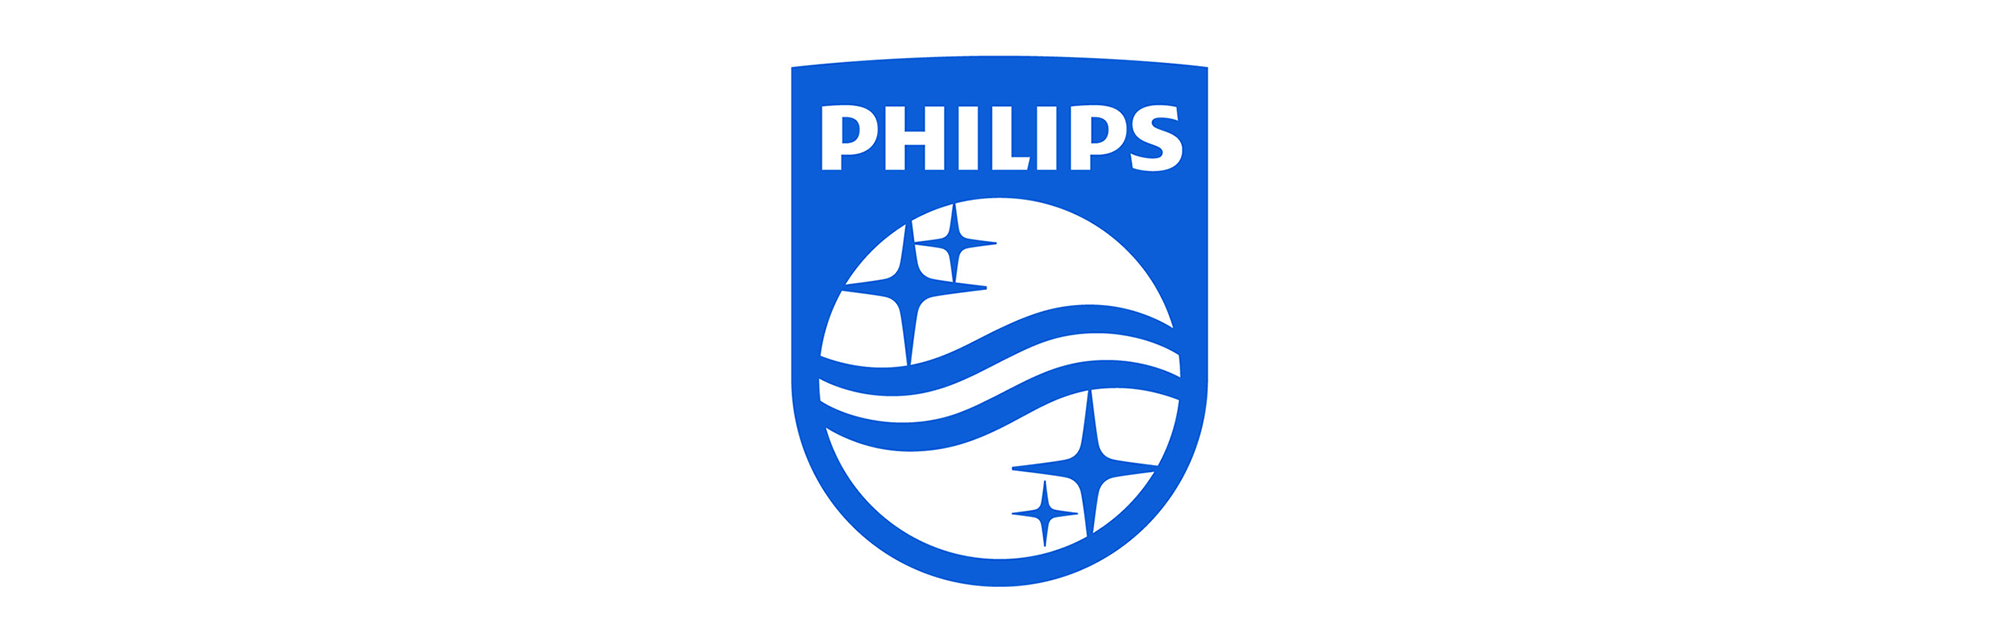 philips.logo_